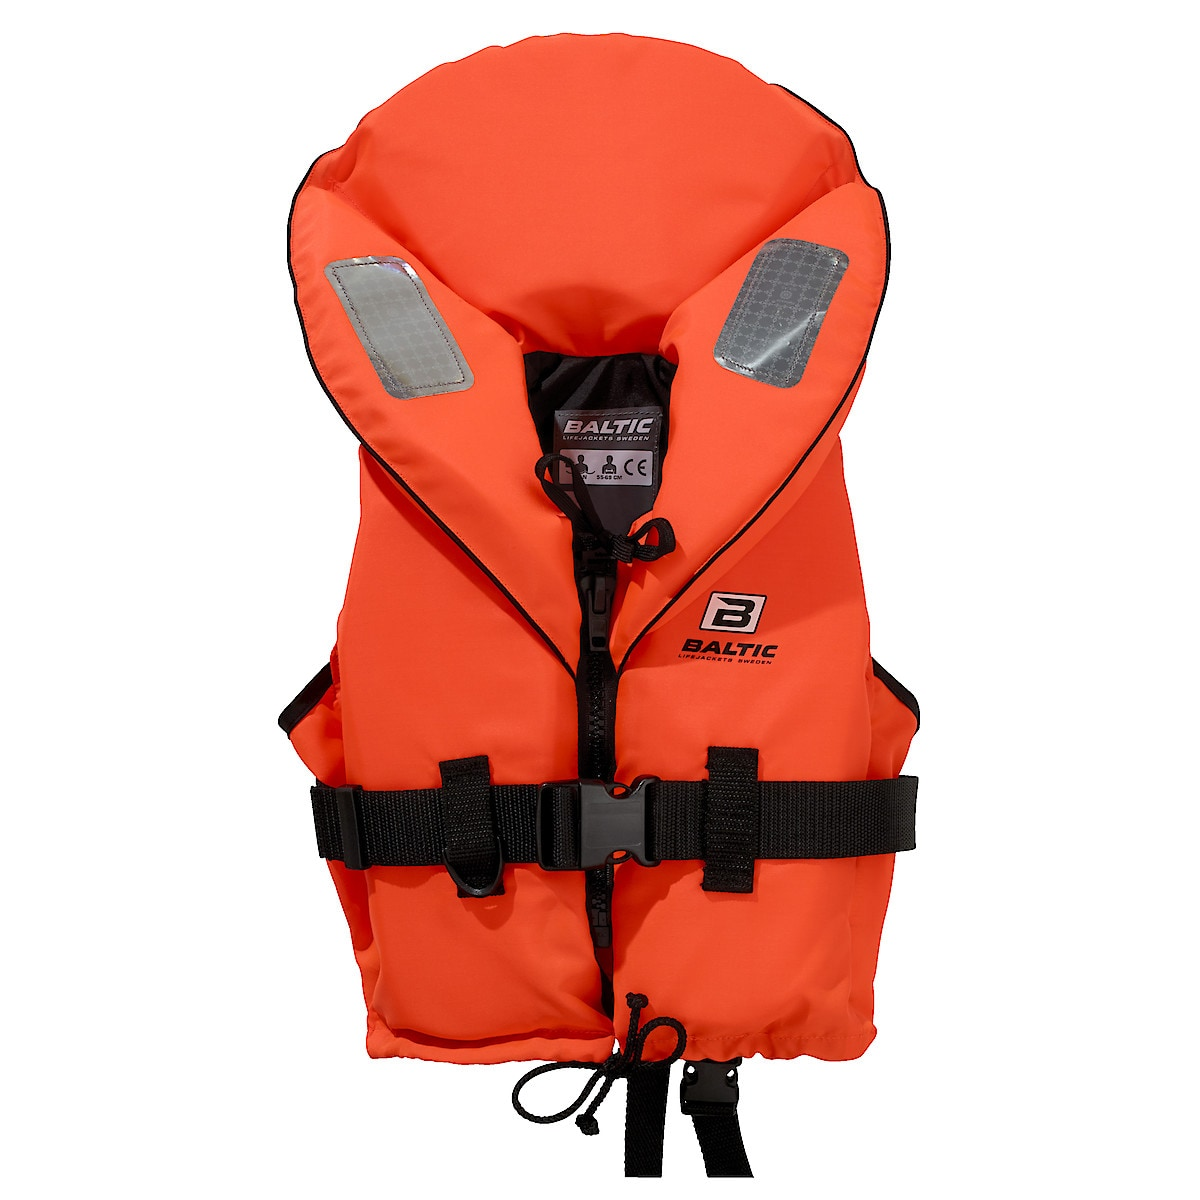 Baltic Skipper 1280 Life Jacket